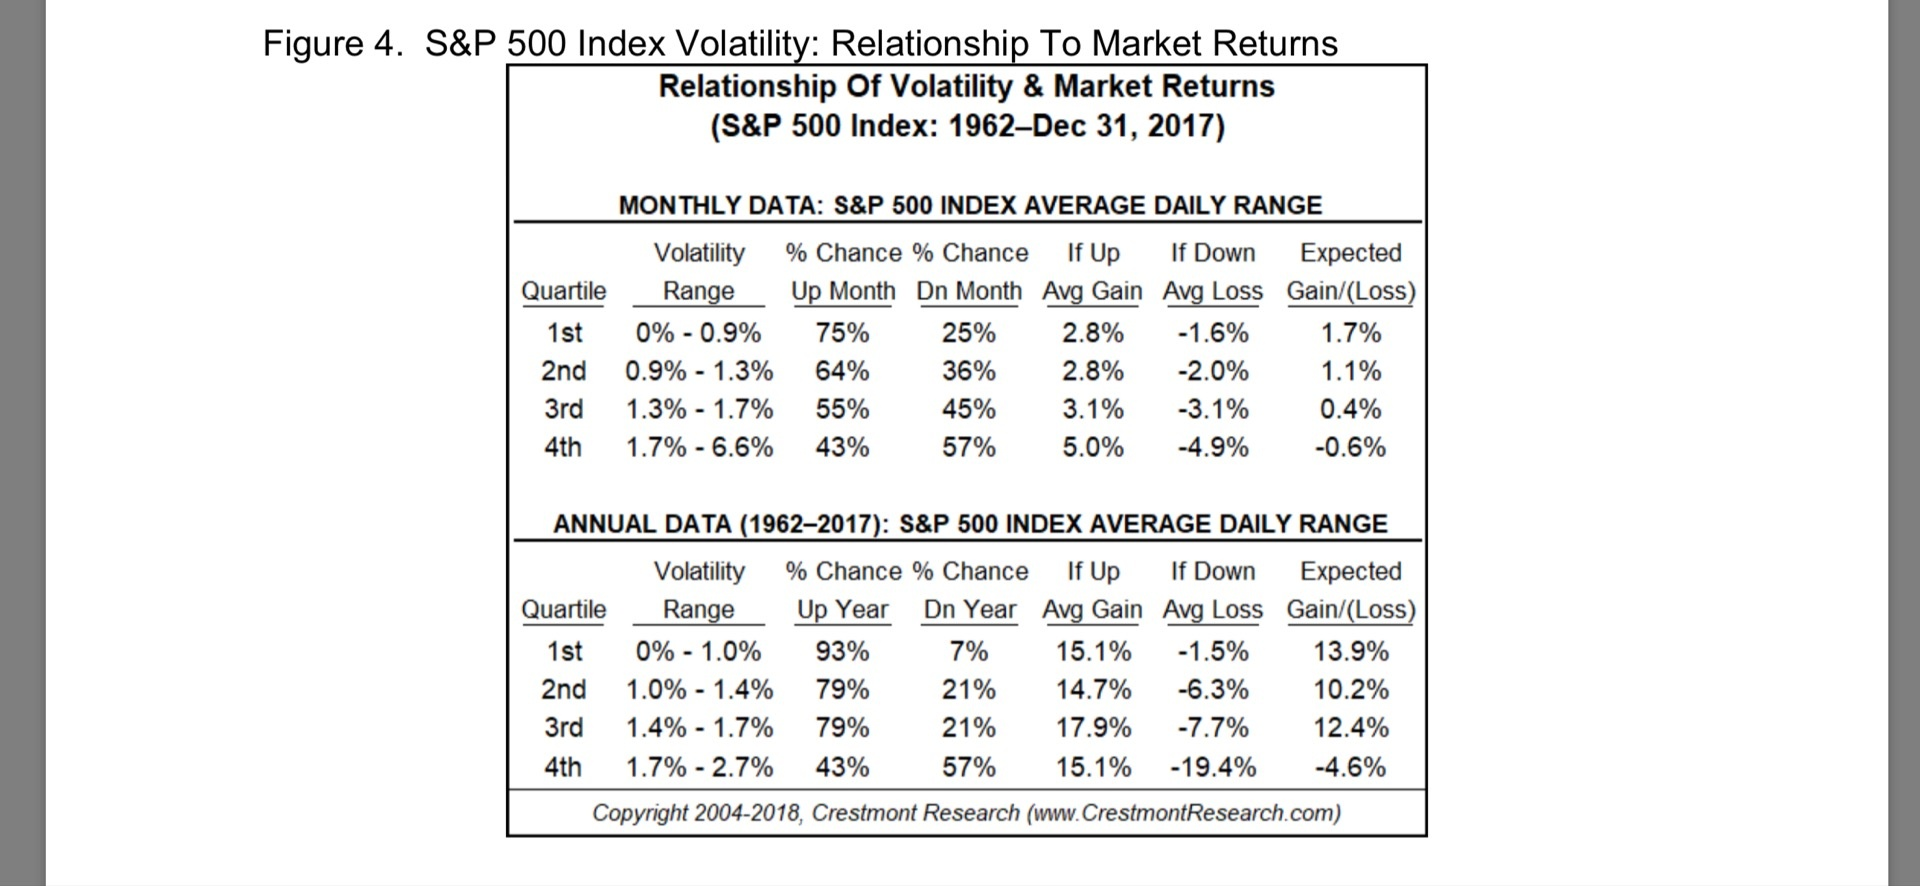 What is the average monthly volatility of the S&P 500 in the long